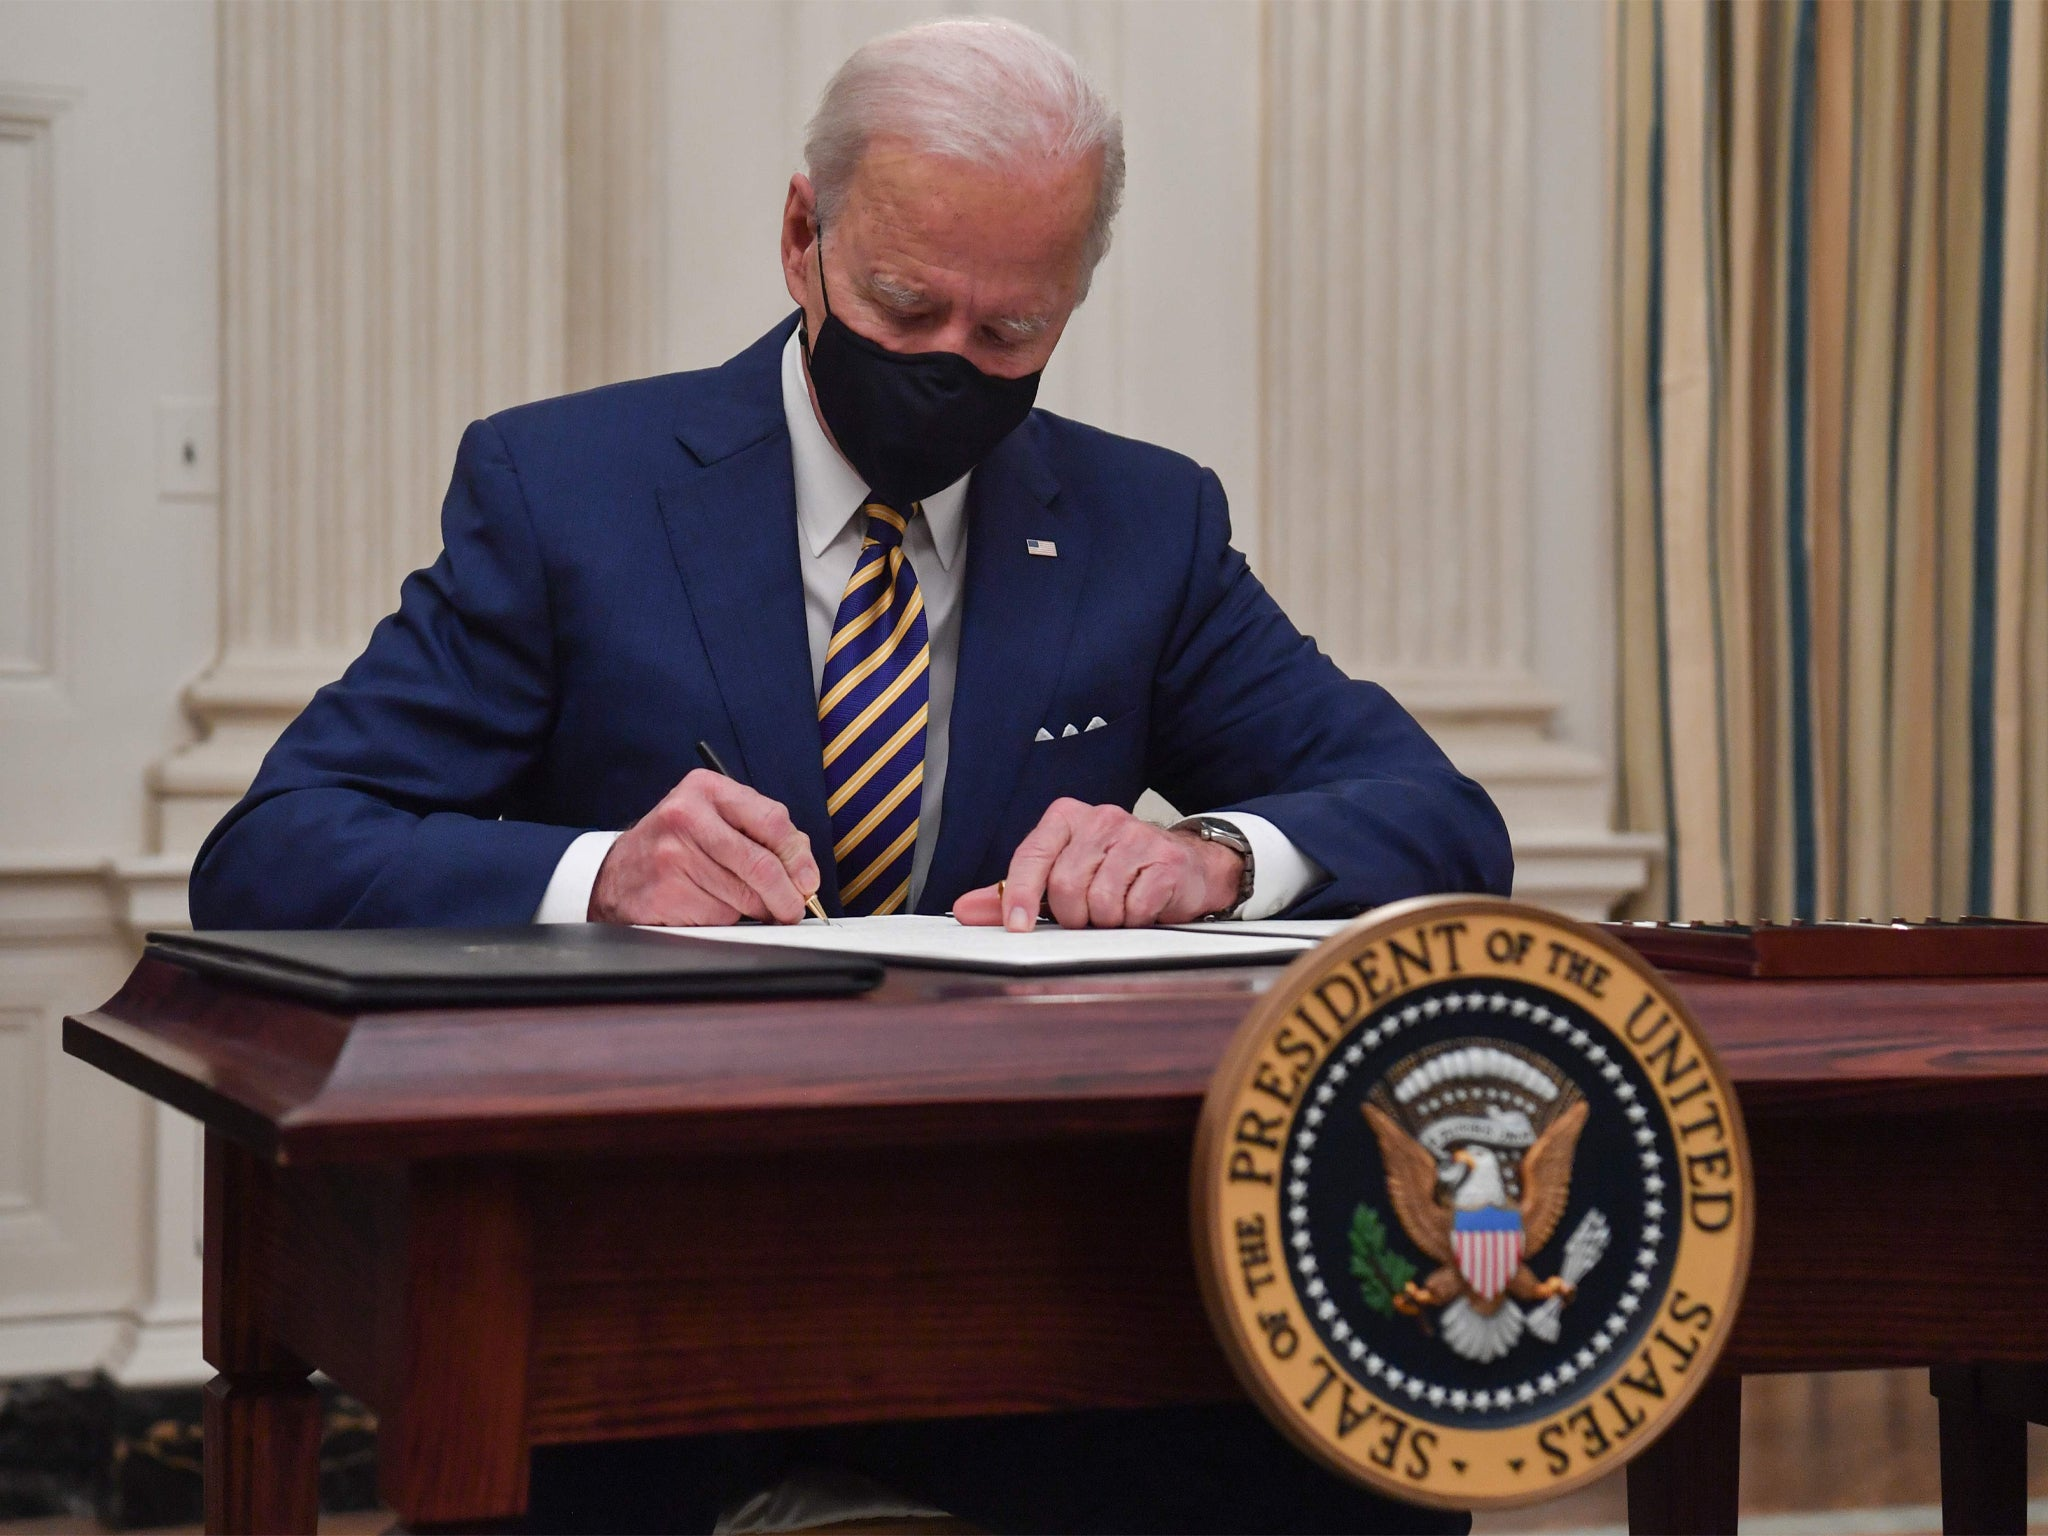 Biden's restoring of environmental rules rolled back by Trump could take years